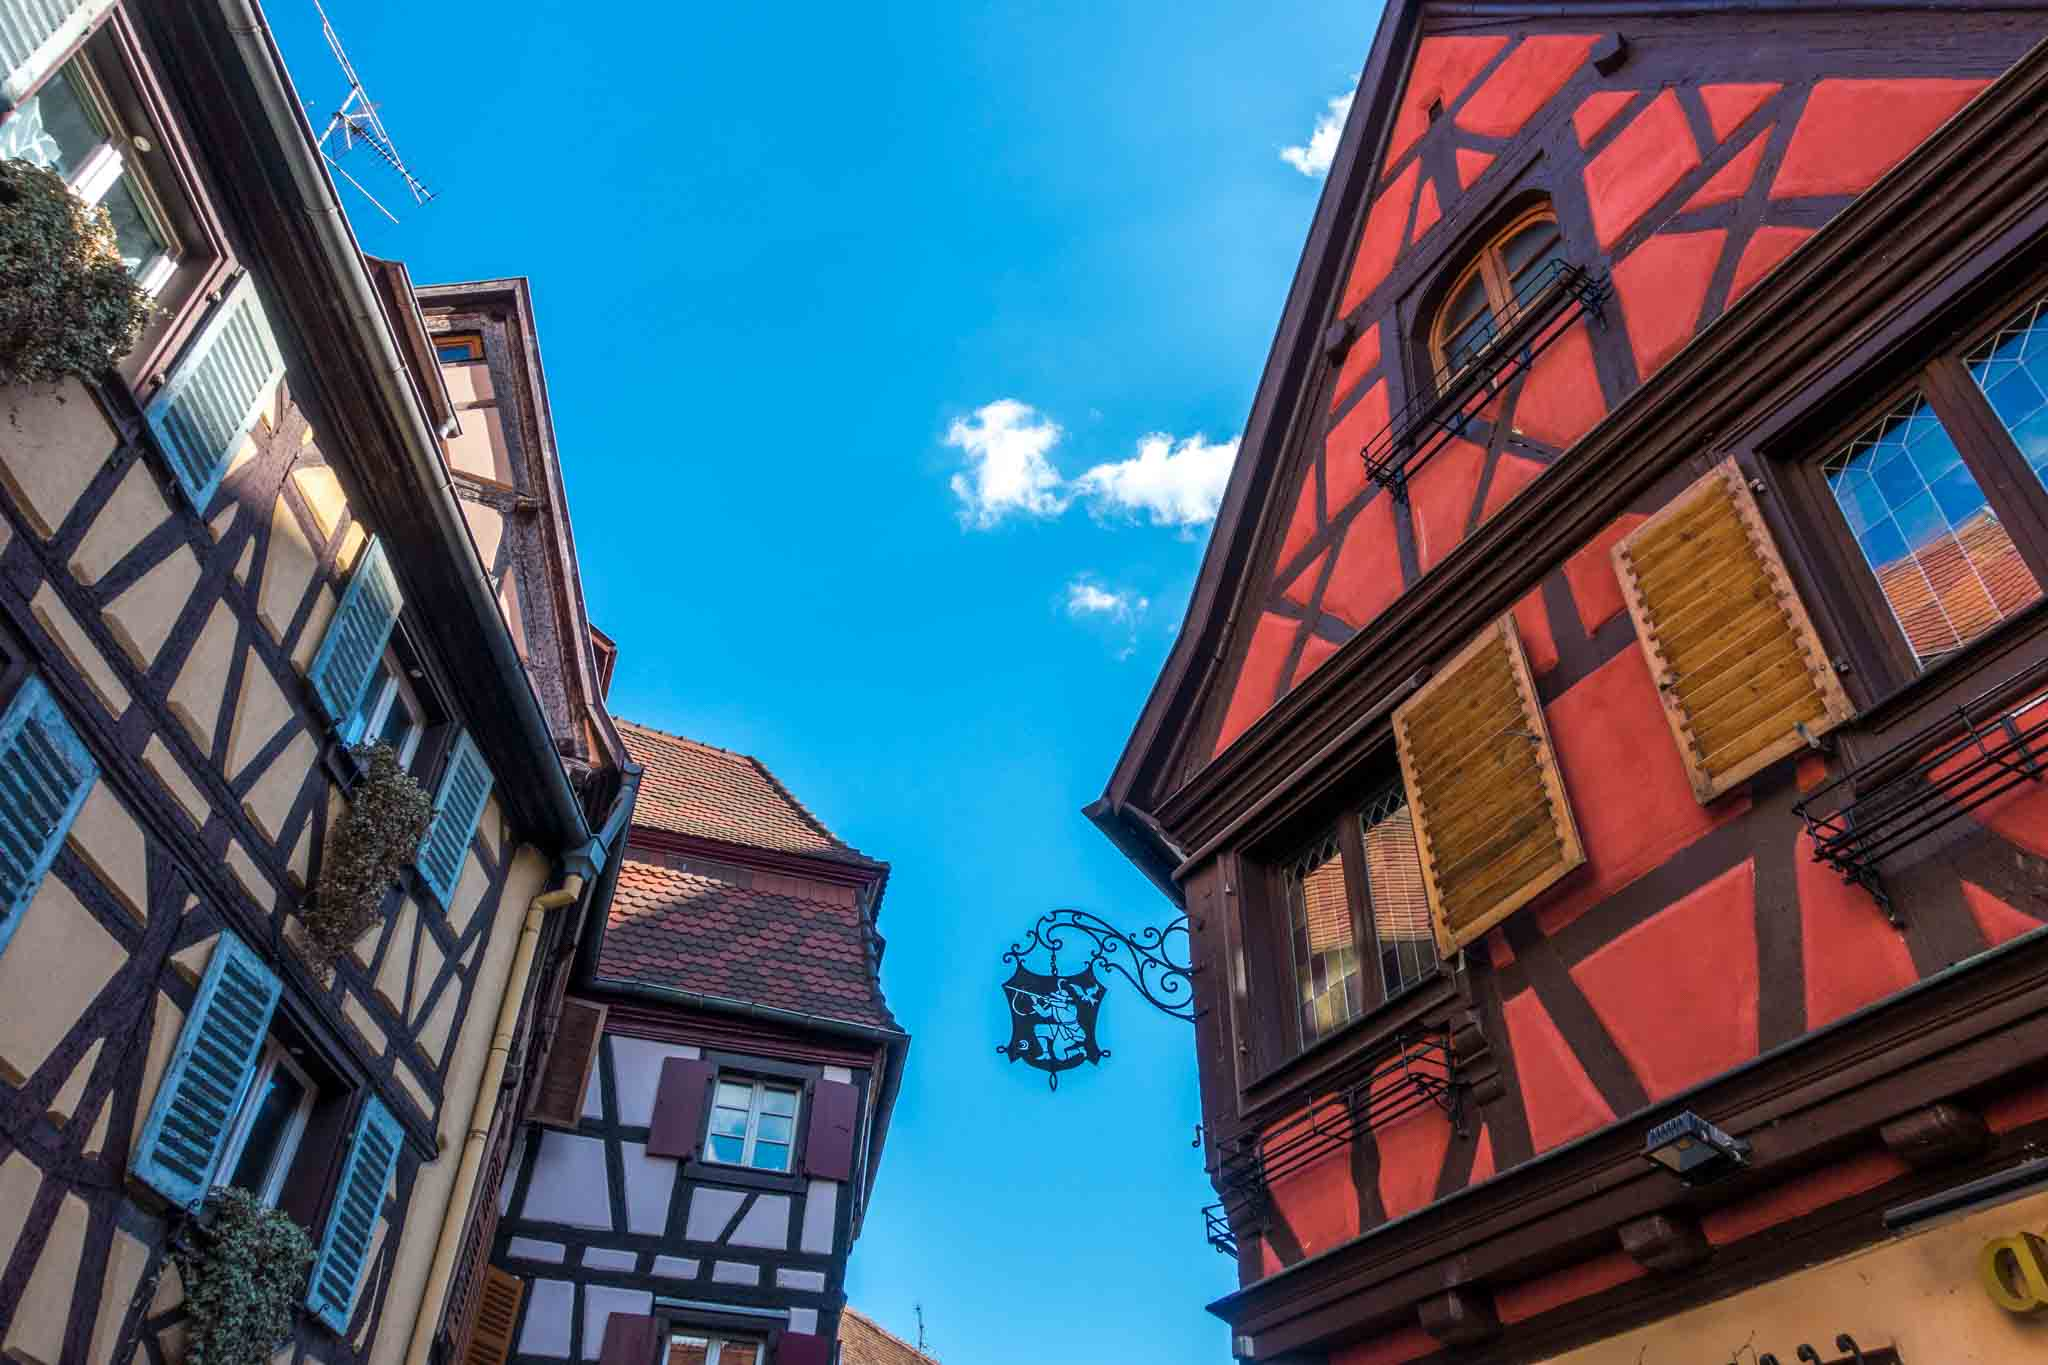 Half-timbered buildings with an iron sign